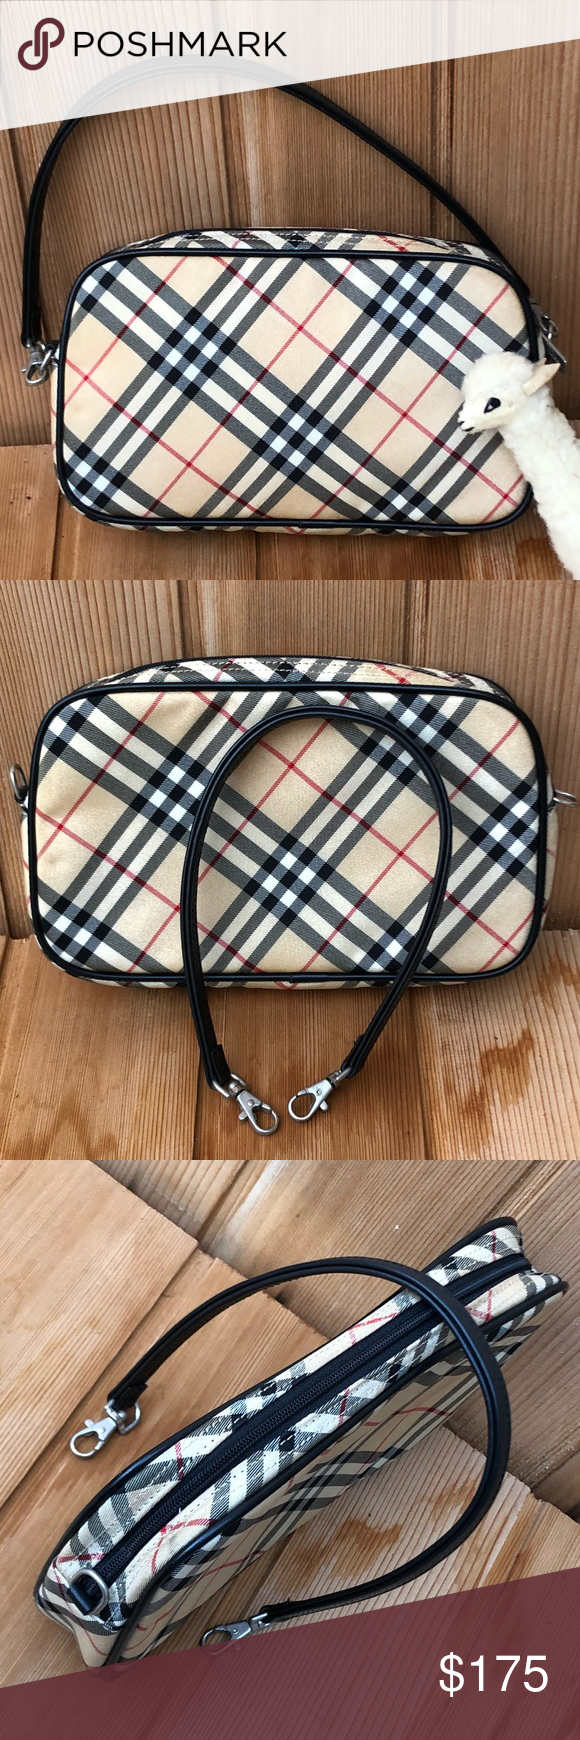 33b5537506ca Burberry Blue Label Clutch ECU Blueberry Blue Label Clutch or Small Bag  Nova check Made in Japan 8.5 x 5 x 1.5 inches approximately Canvas and black  leather ...